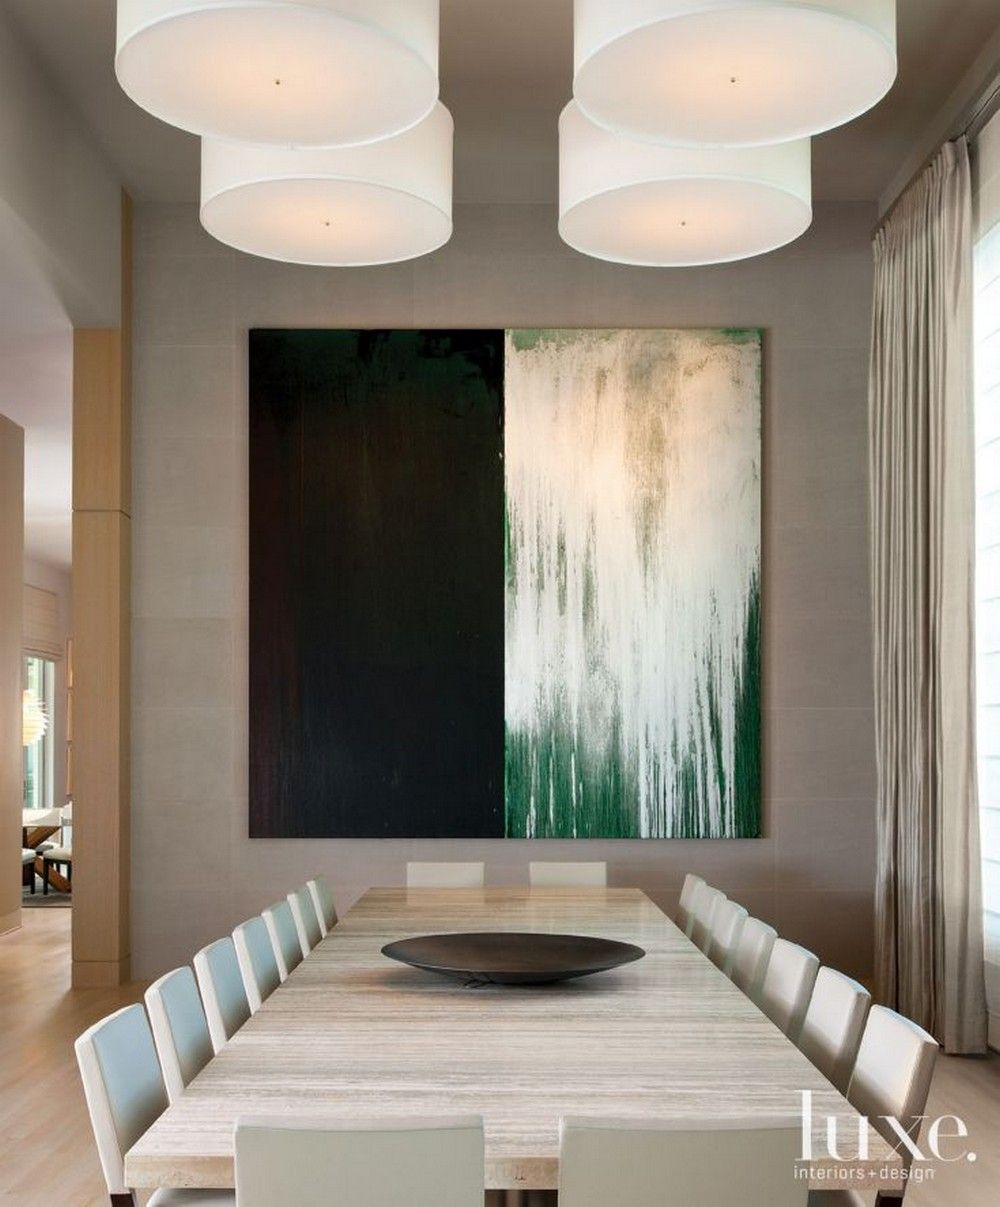 Home interior design dining room  modern architecture dining room home decor ideas  modern